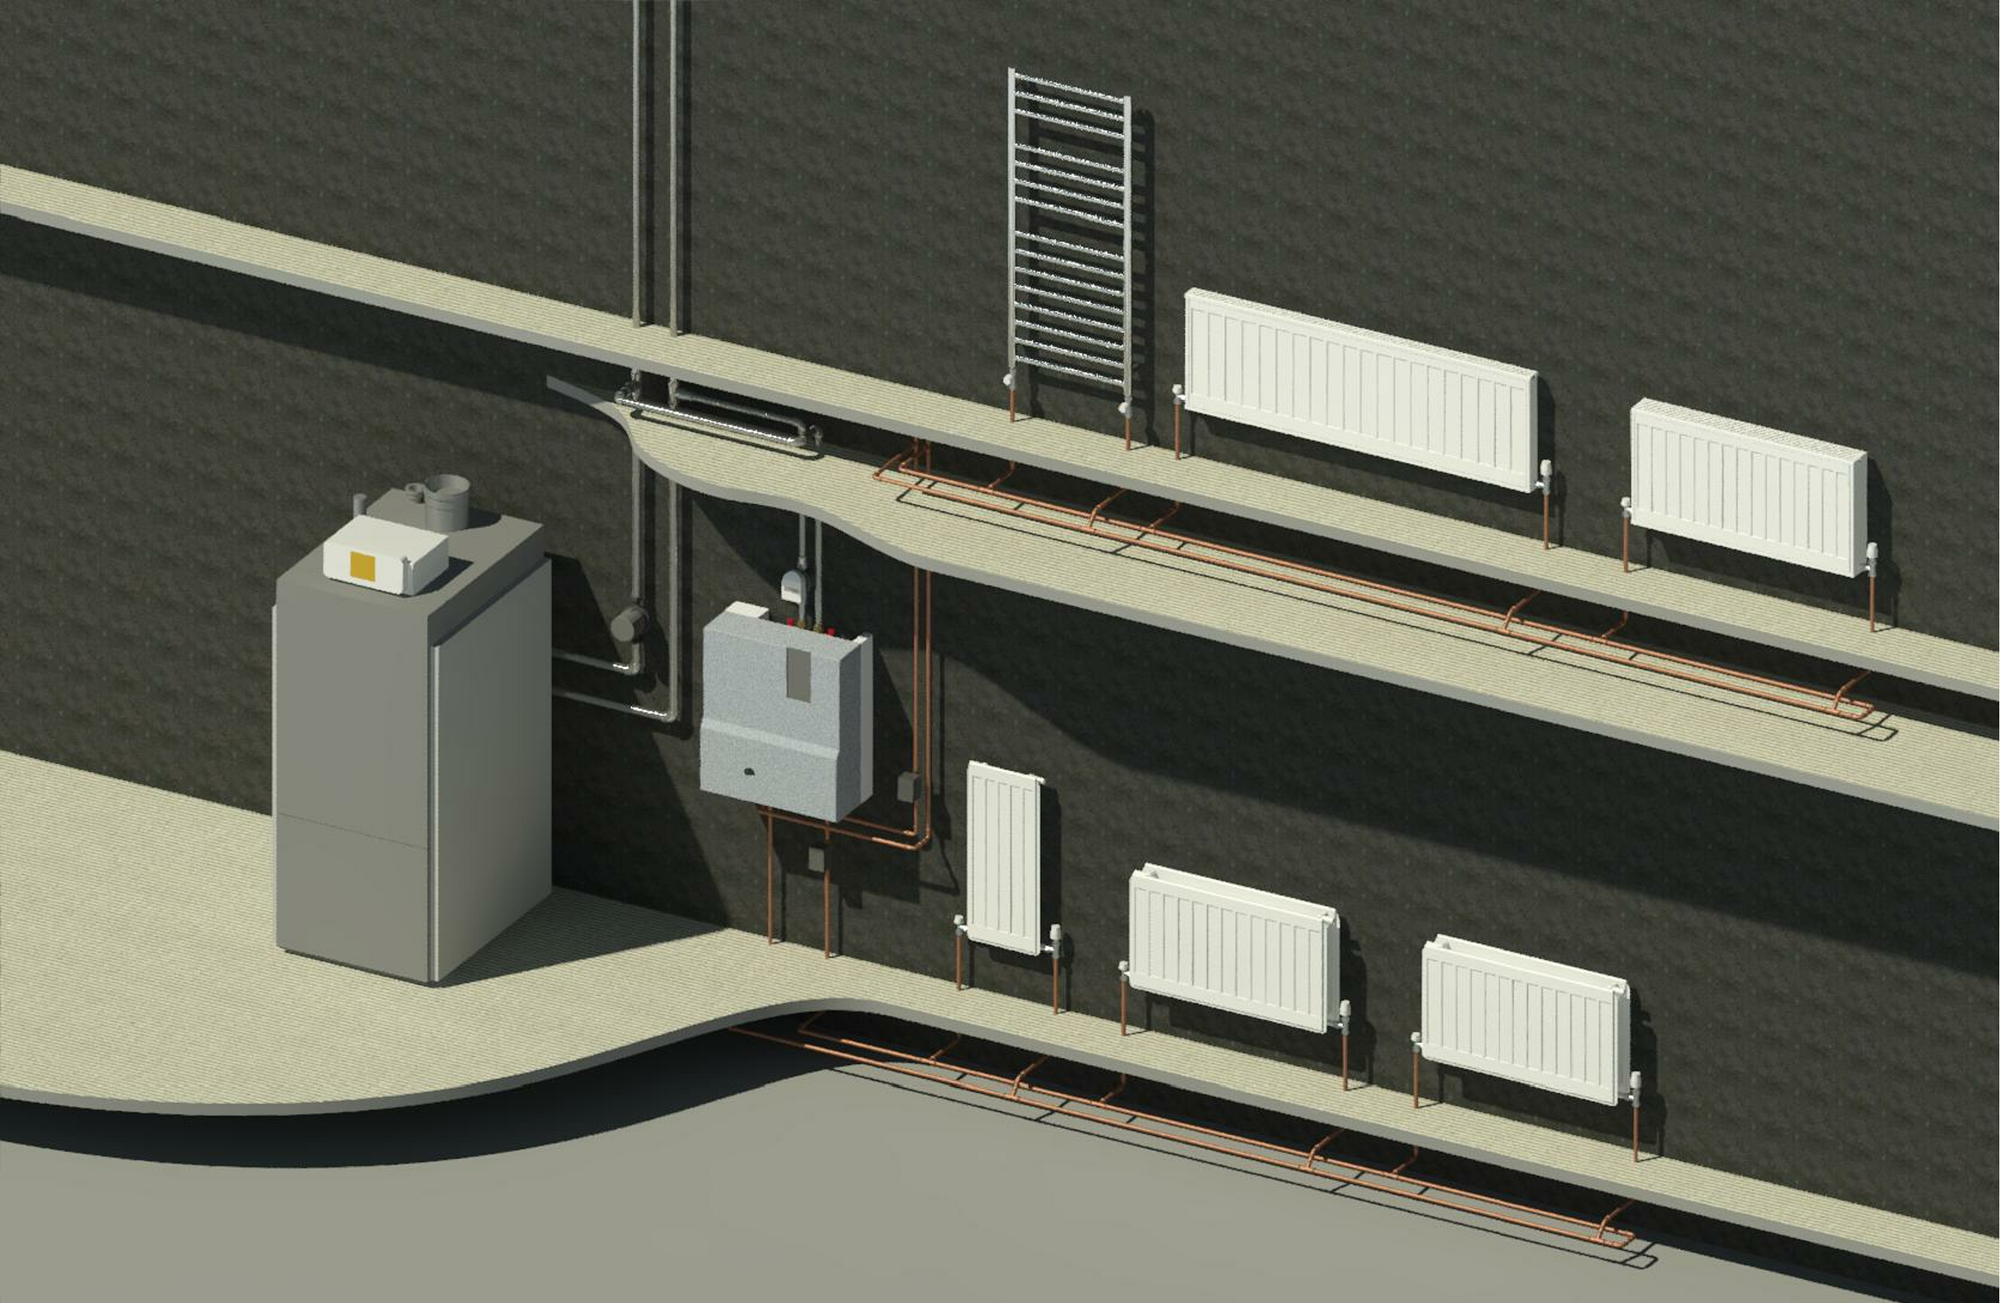 Rendering of complete central heating system showing all families with connected pipework.